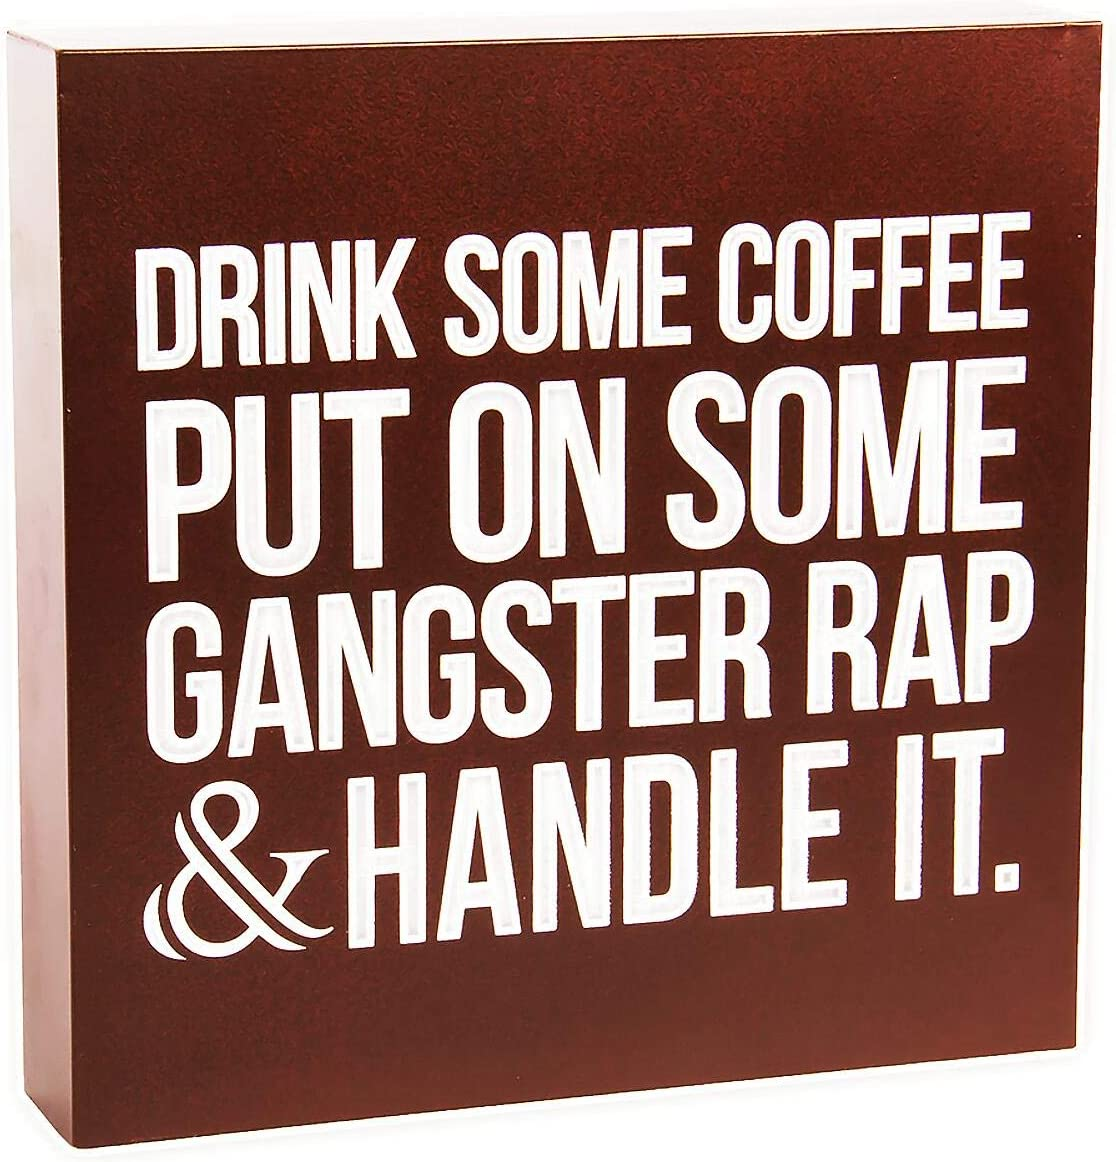 Coffee Sign Decor Coffee Box Decor Drink Some Coffee Put On Some Gangster Rap Coffee Box Sign, Farmhouse Coffee Sign Wall Decor,Funny Metal Coffee Box Plaque Home Desk Decoration or Coffee Bar Sign